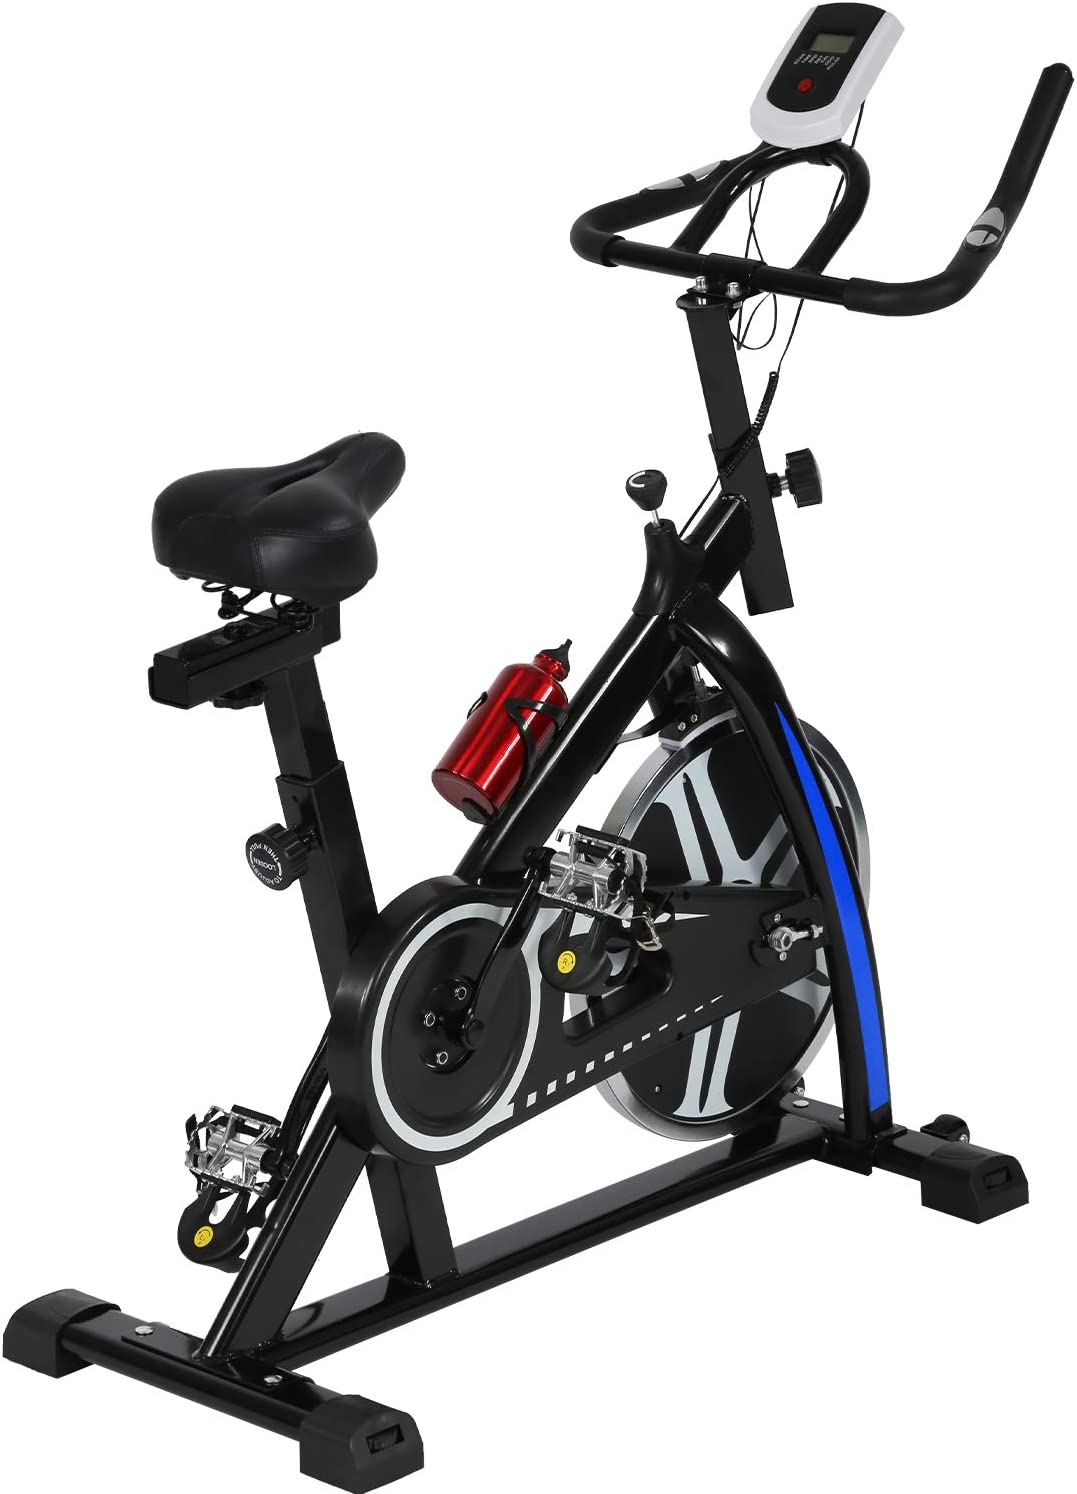 Adults Exercise Bike For Gym Studio Health Fitness Fitness Bike Stationary Spin Bicycle Indoor Cycling Bike Led Display Gym Magnetic Bike